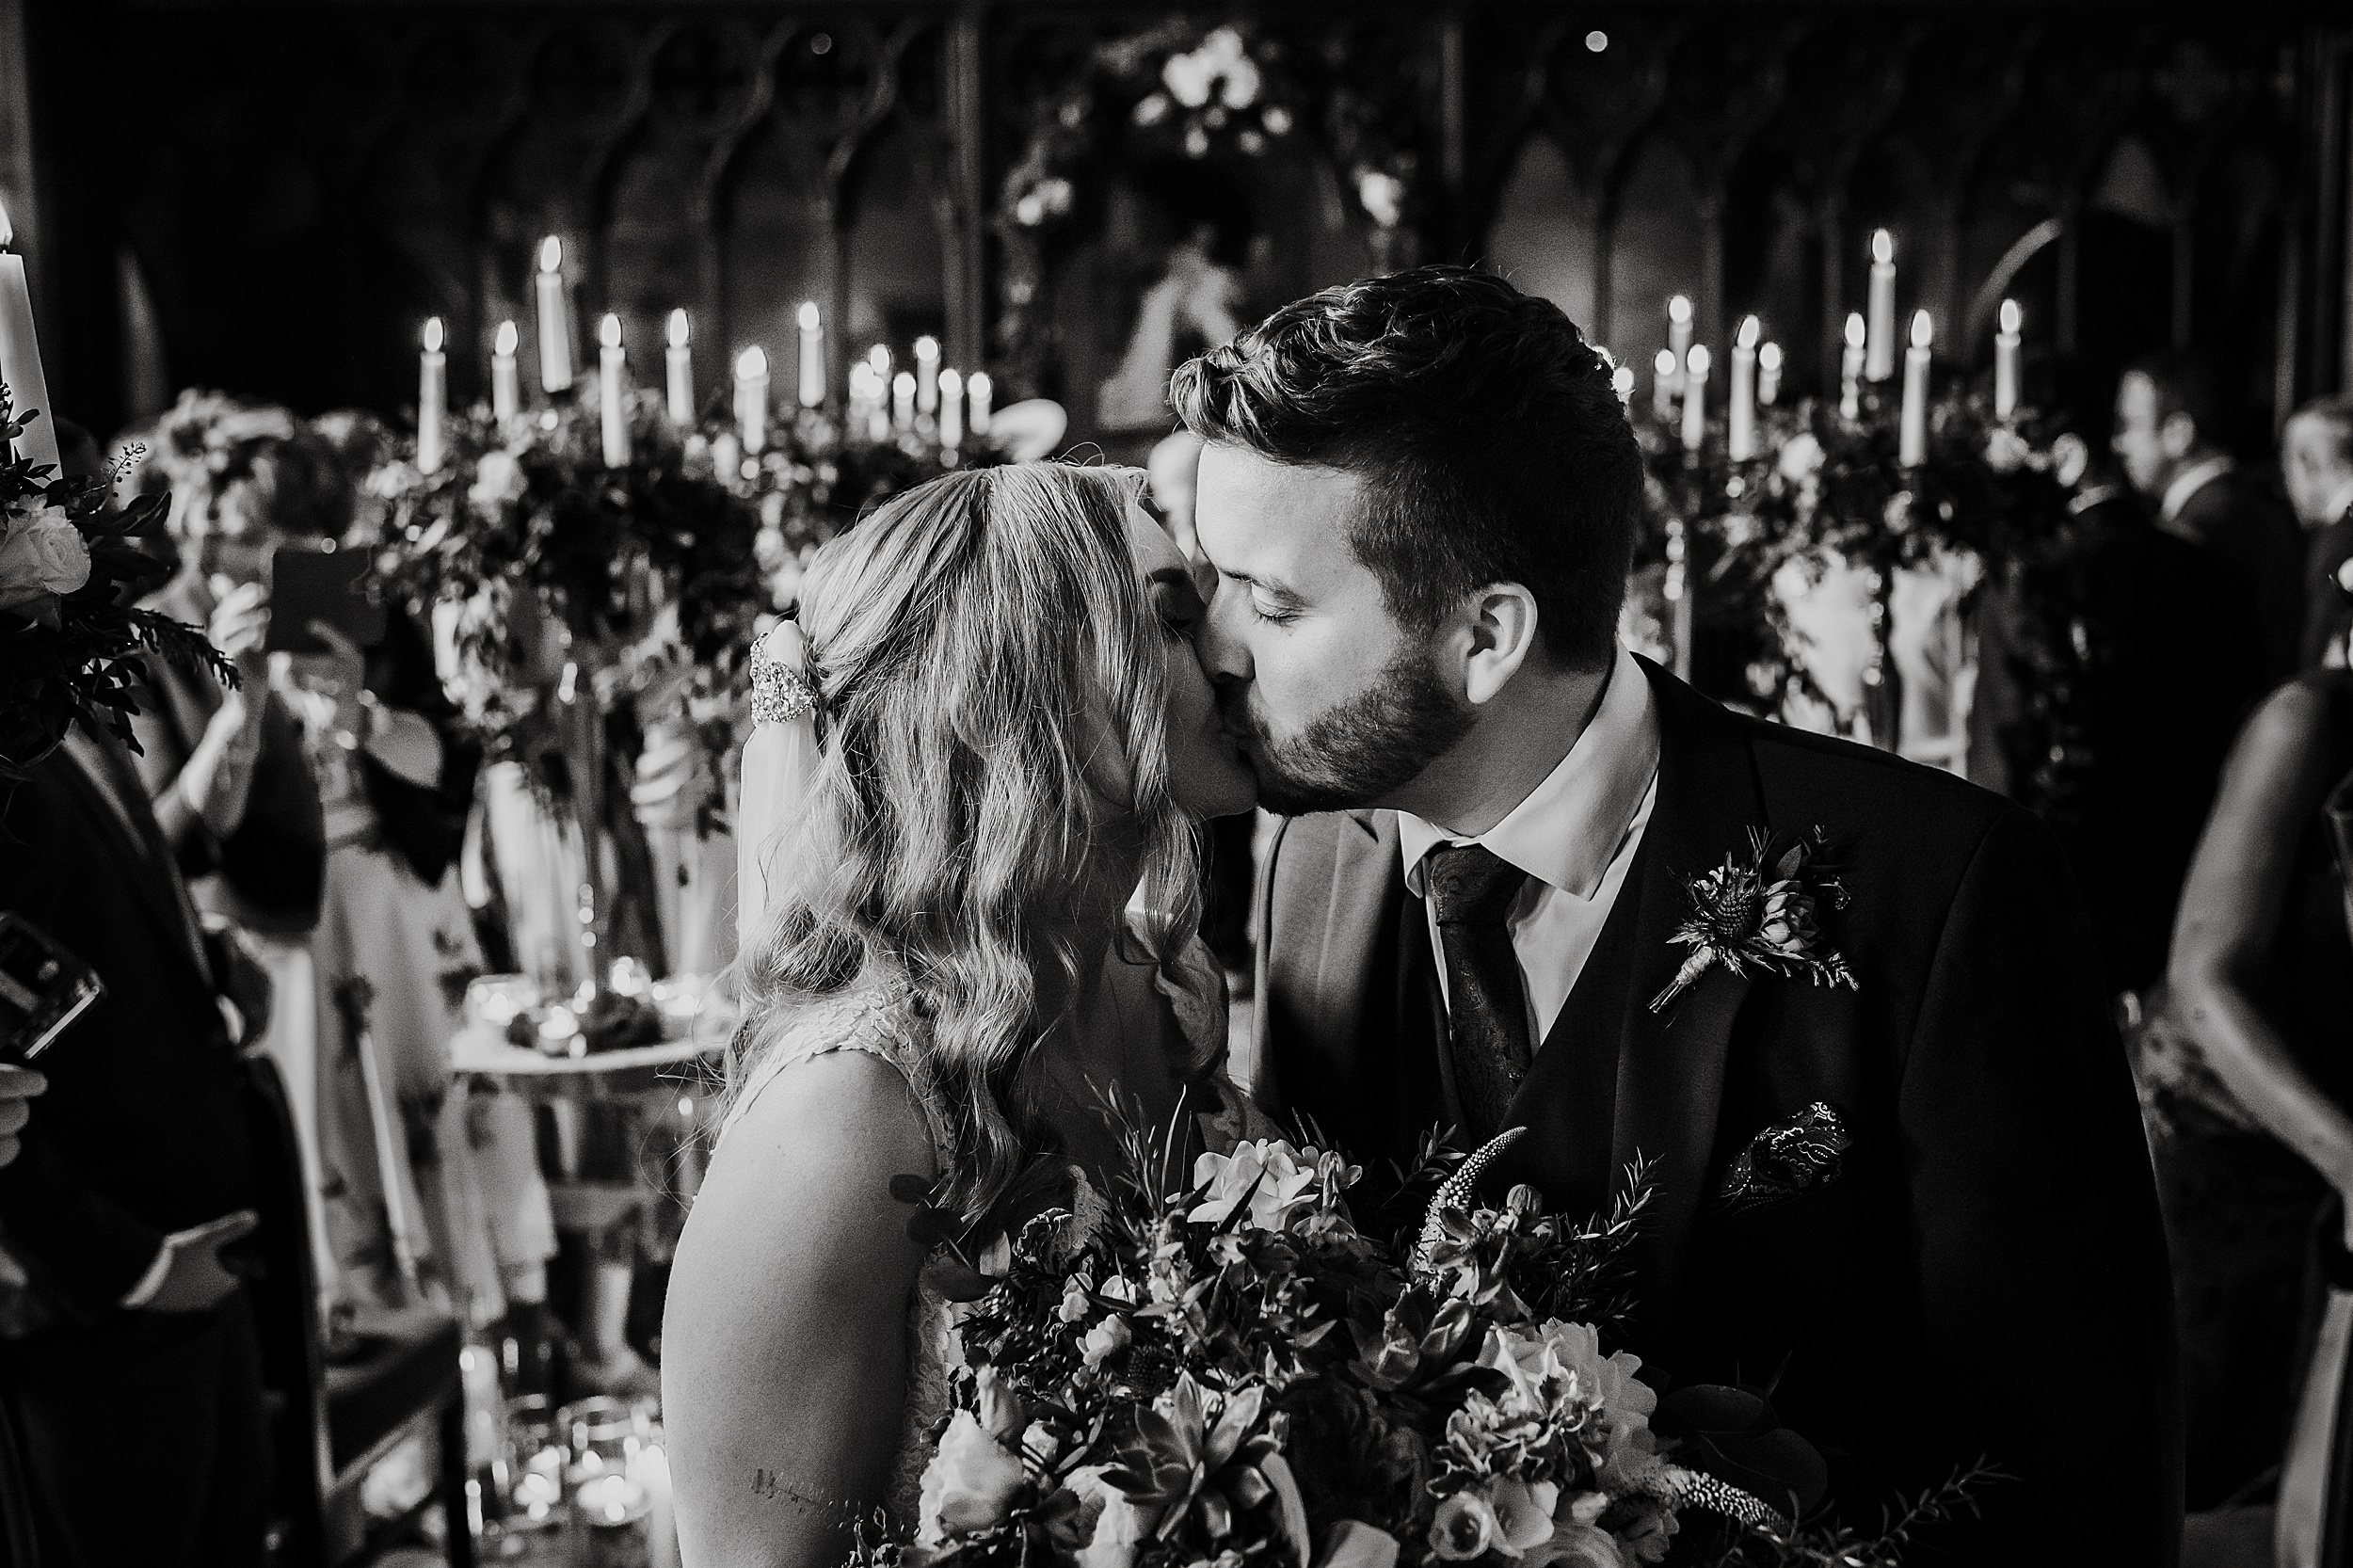 Peckforton_Castle_Cheshire_Toronto_Wedding_Photographer_UK_Destination_Wedding_0048.jpg